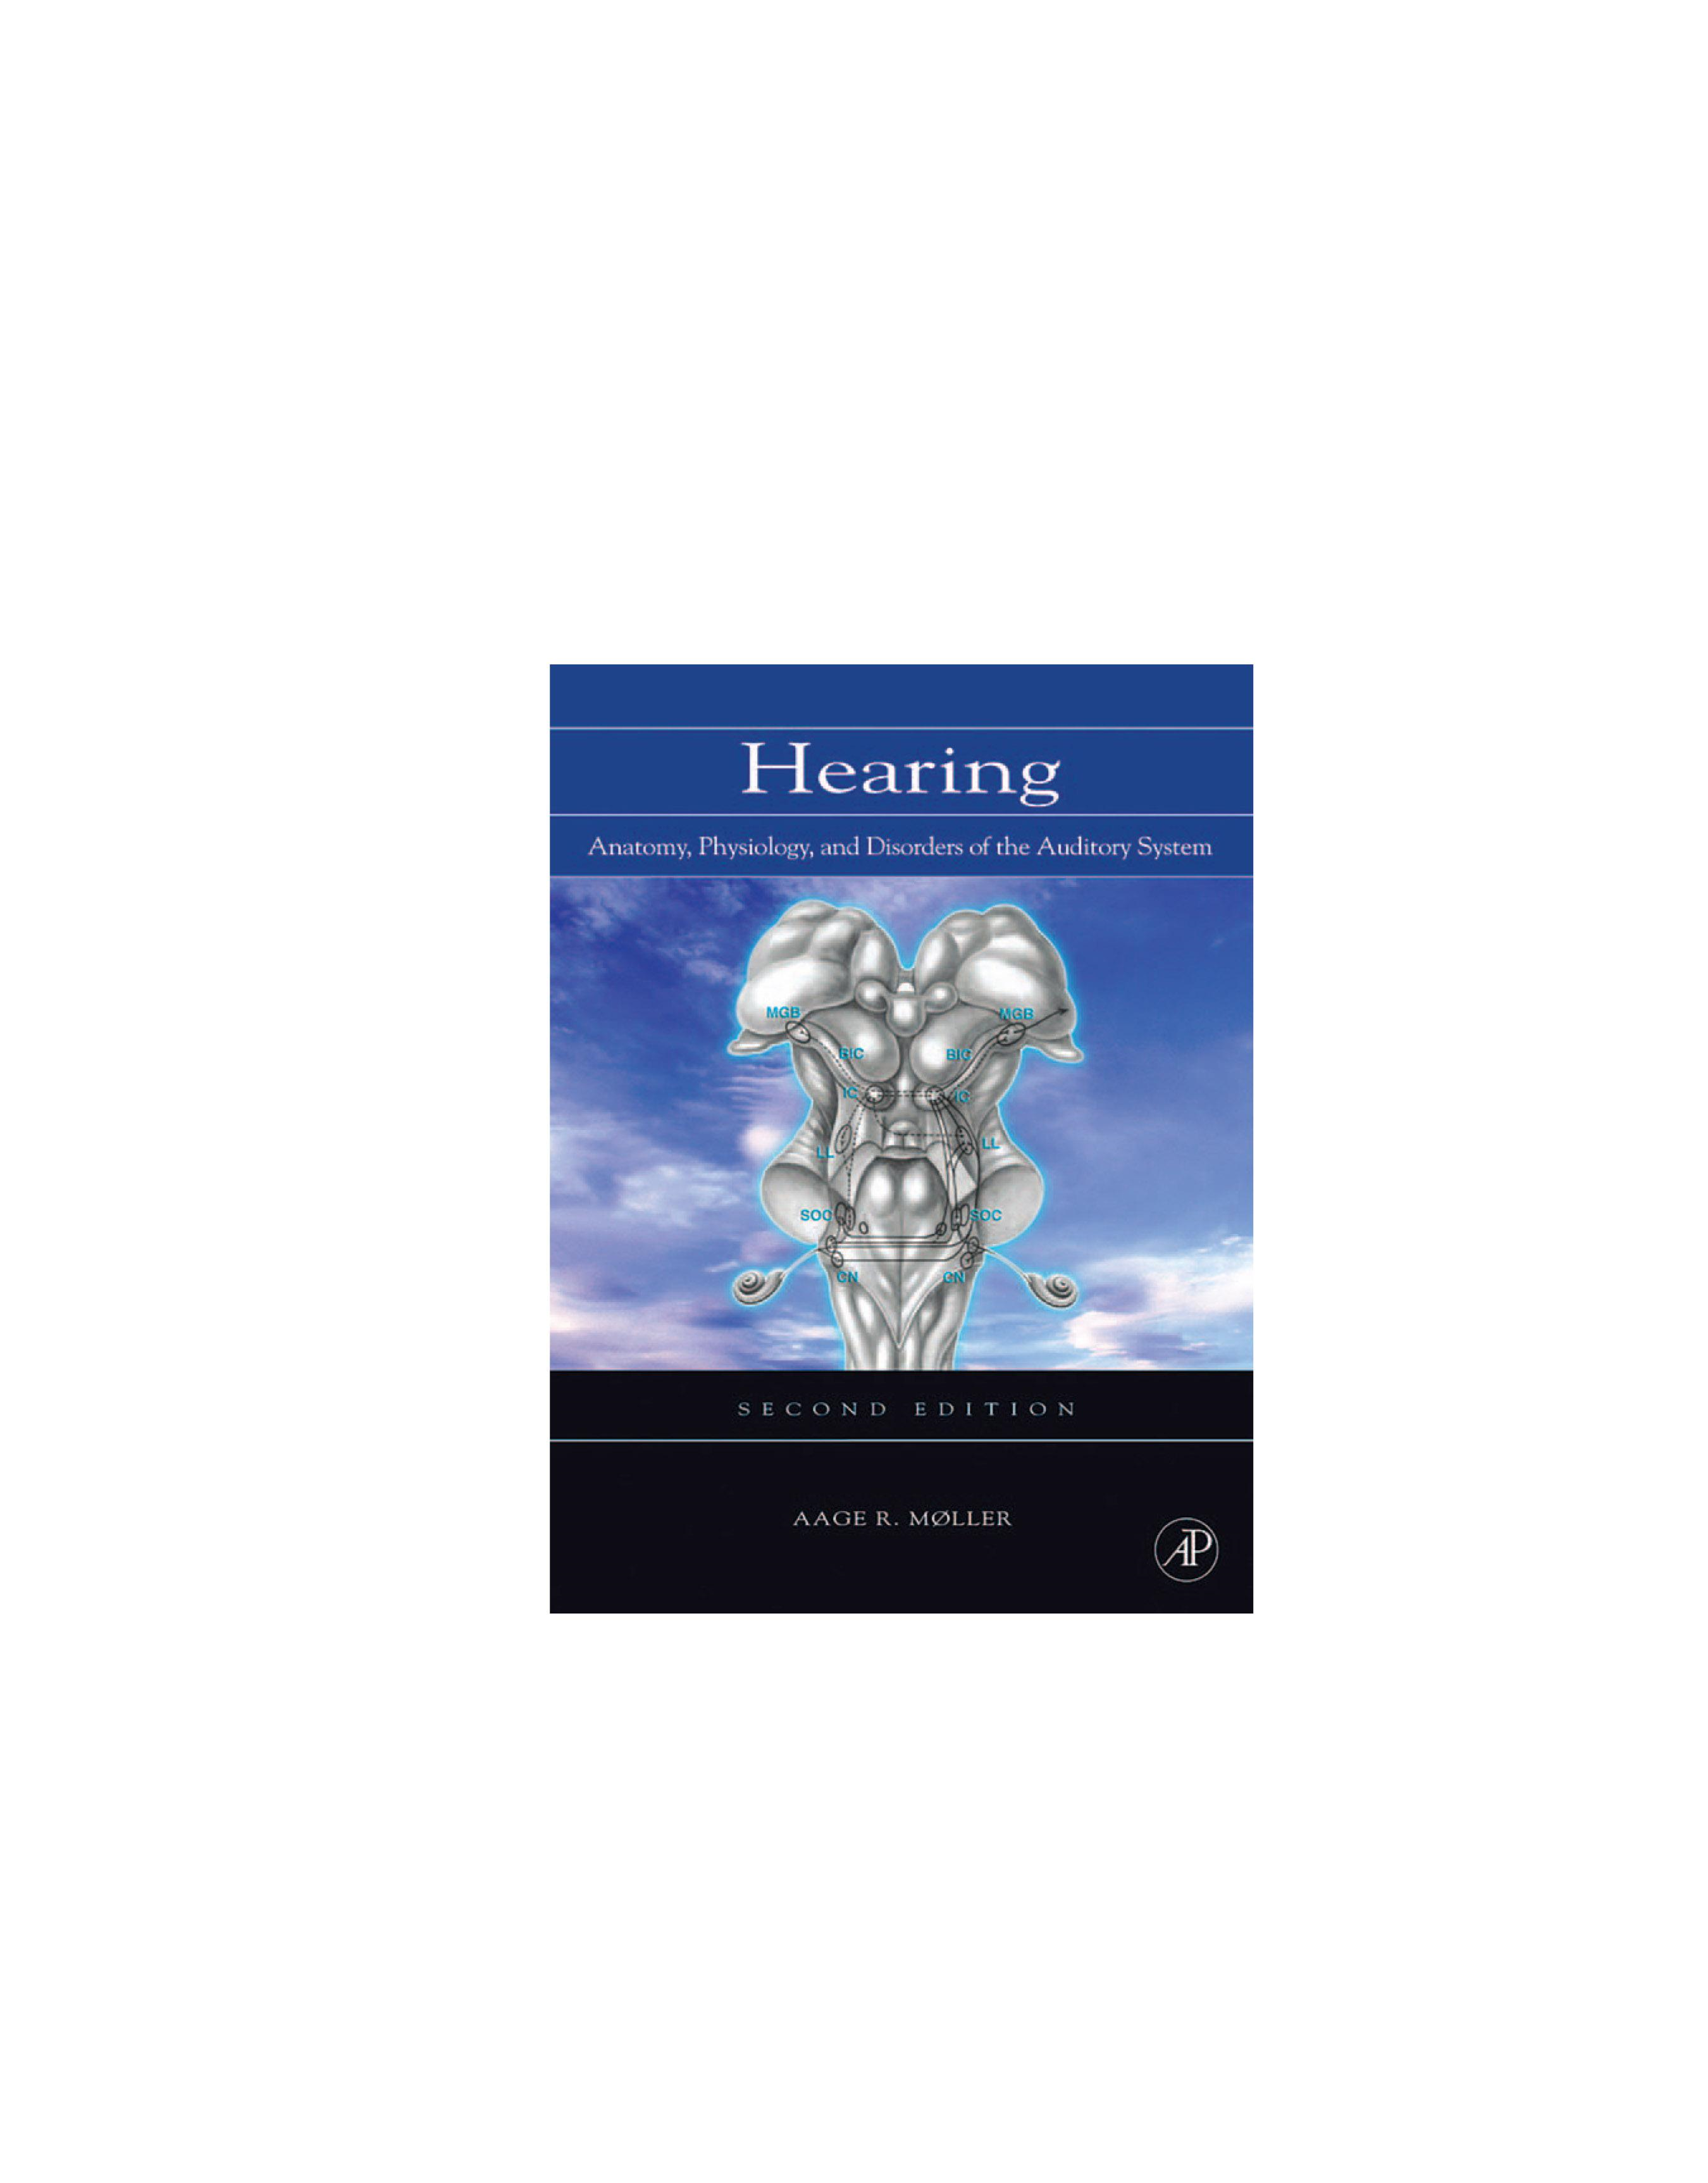 Hearing: Anatomy, Physiology, and Disorders of the Auditory System By: Moller, Aage R.